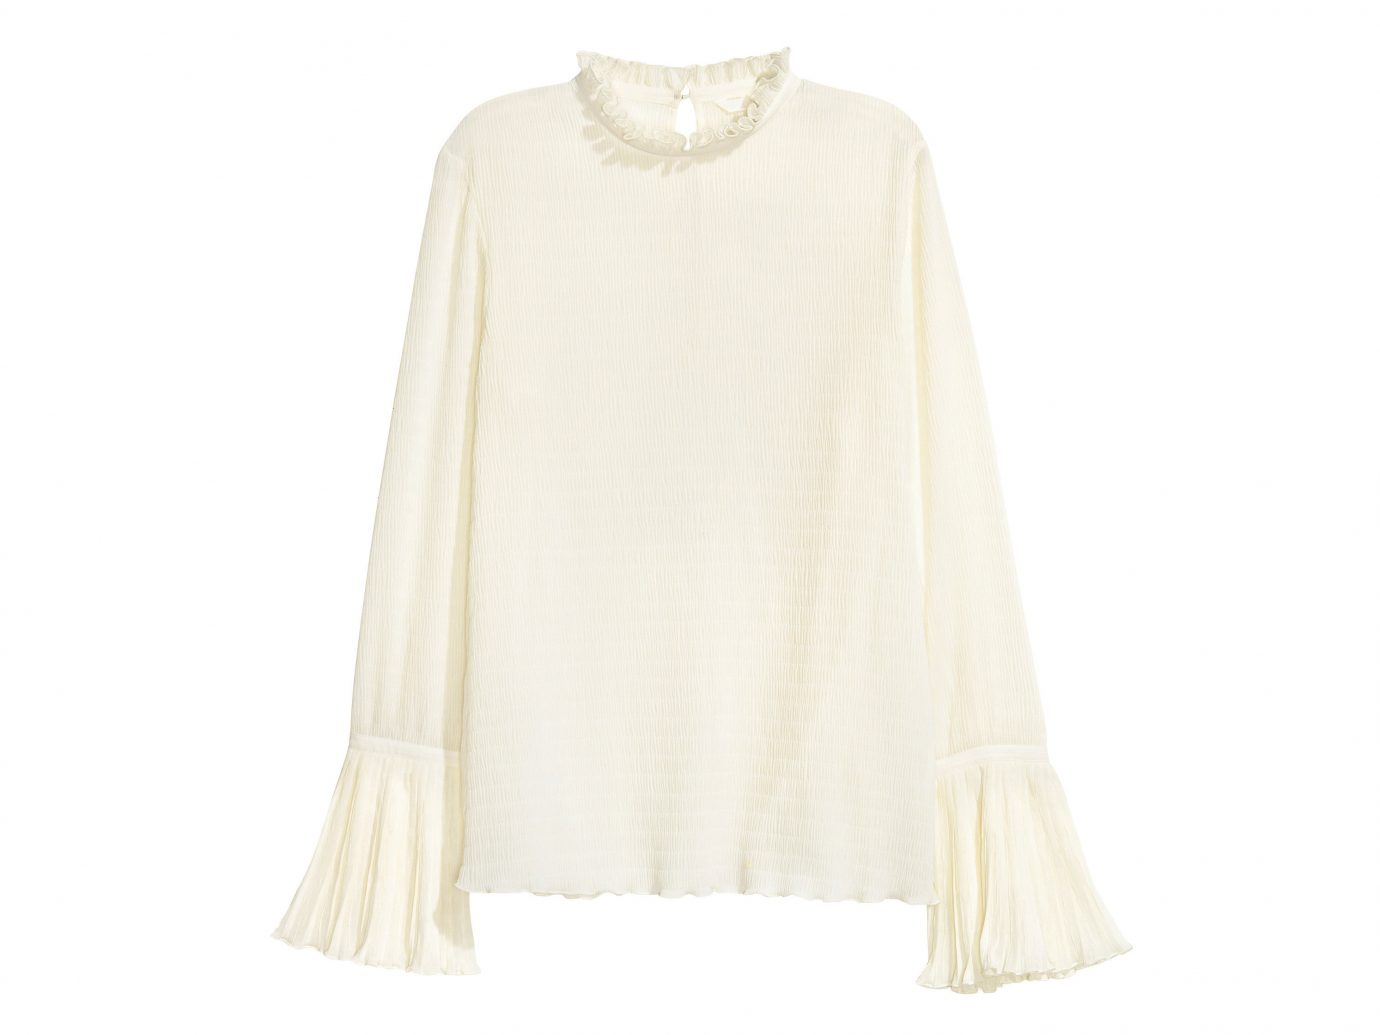 Style + Design clothing indoor day dress sleeve dress gown outerwear blouse textile neck collar beige shirt